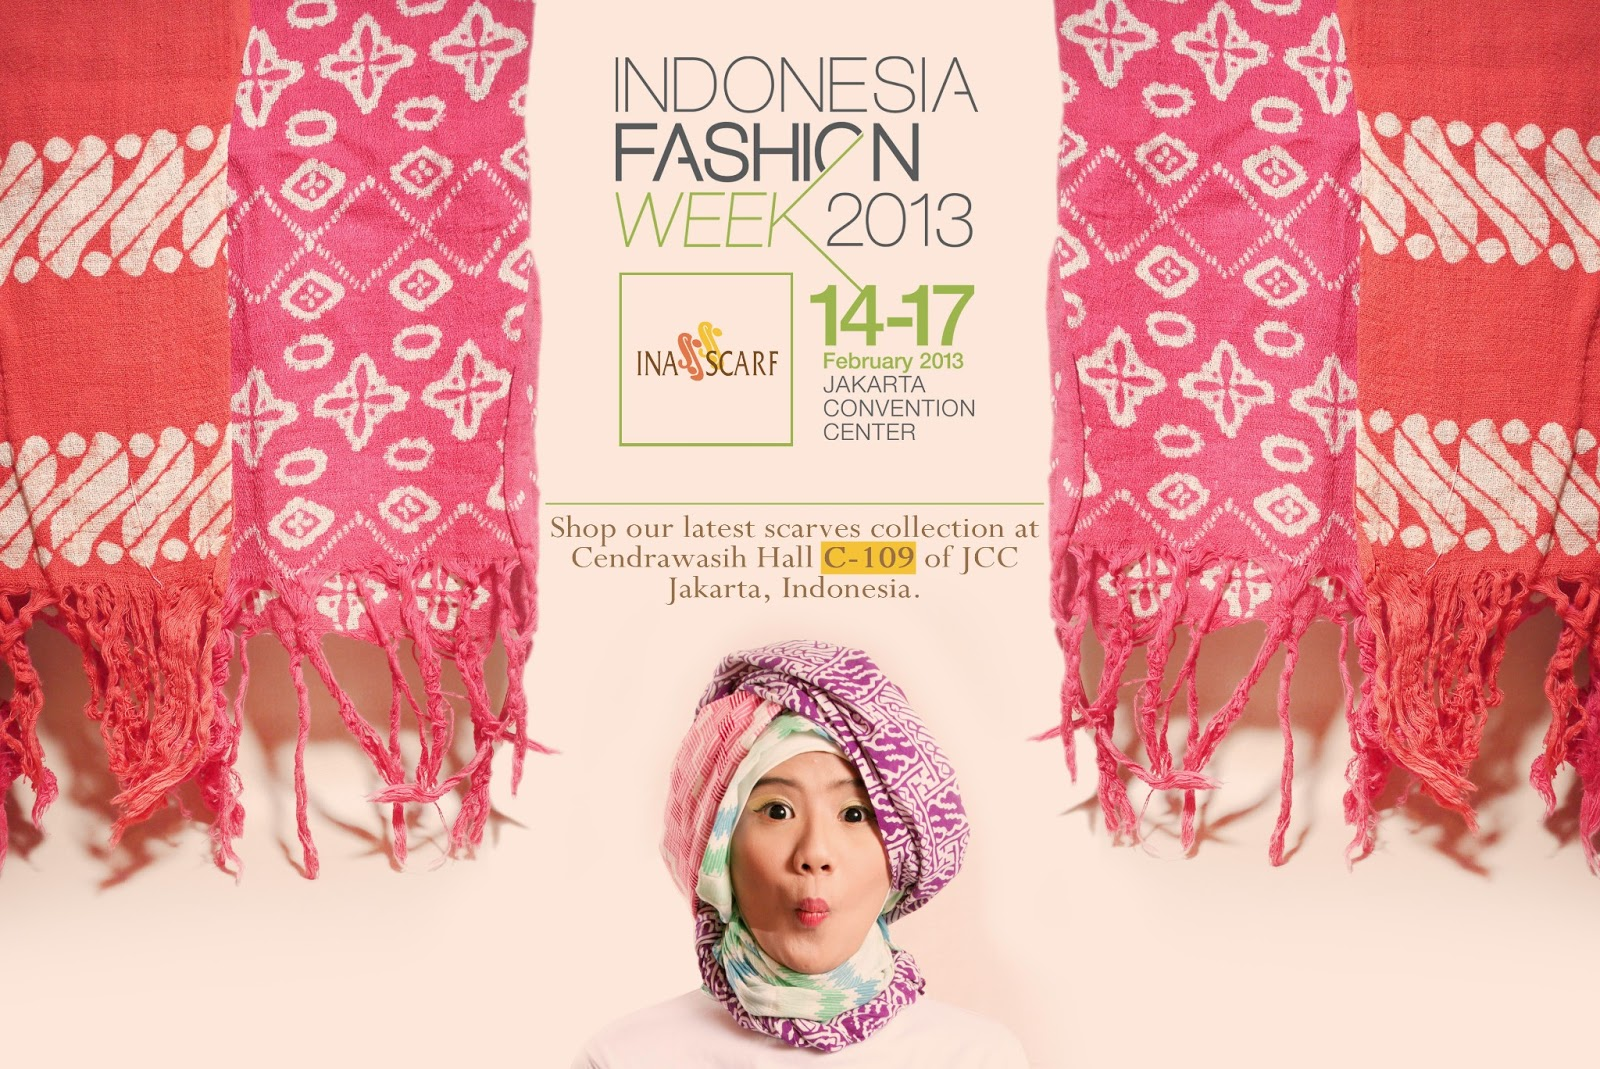 Open Invitation: Indonesia Fashion Week 2013